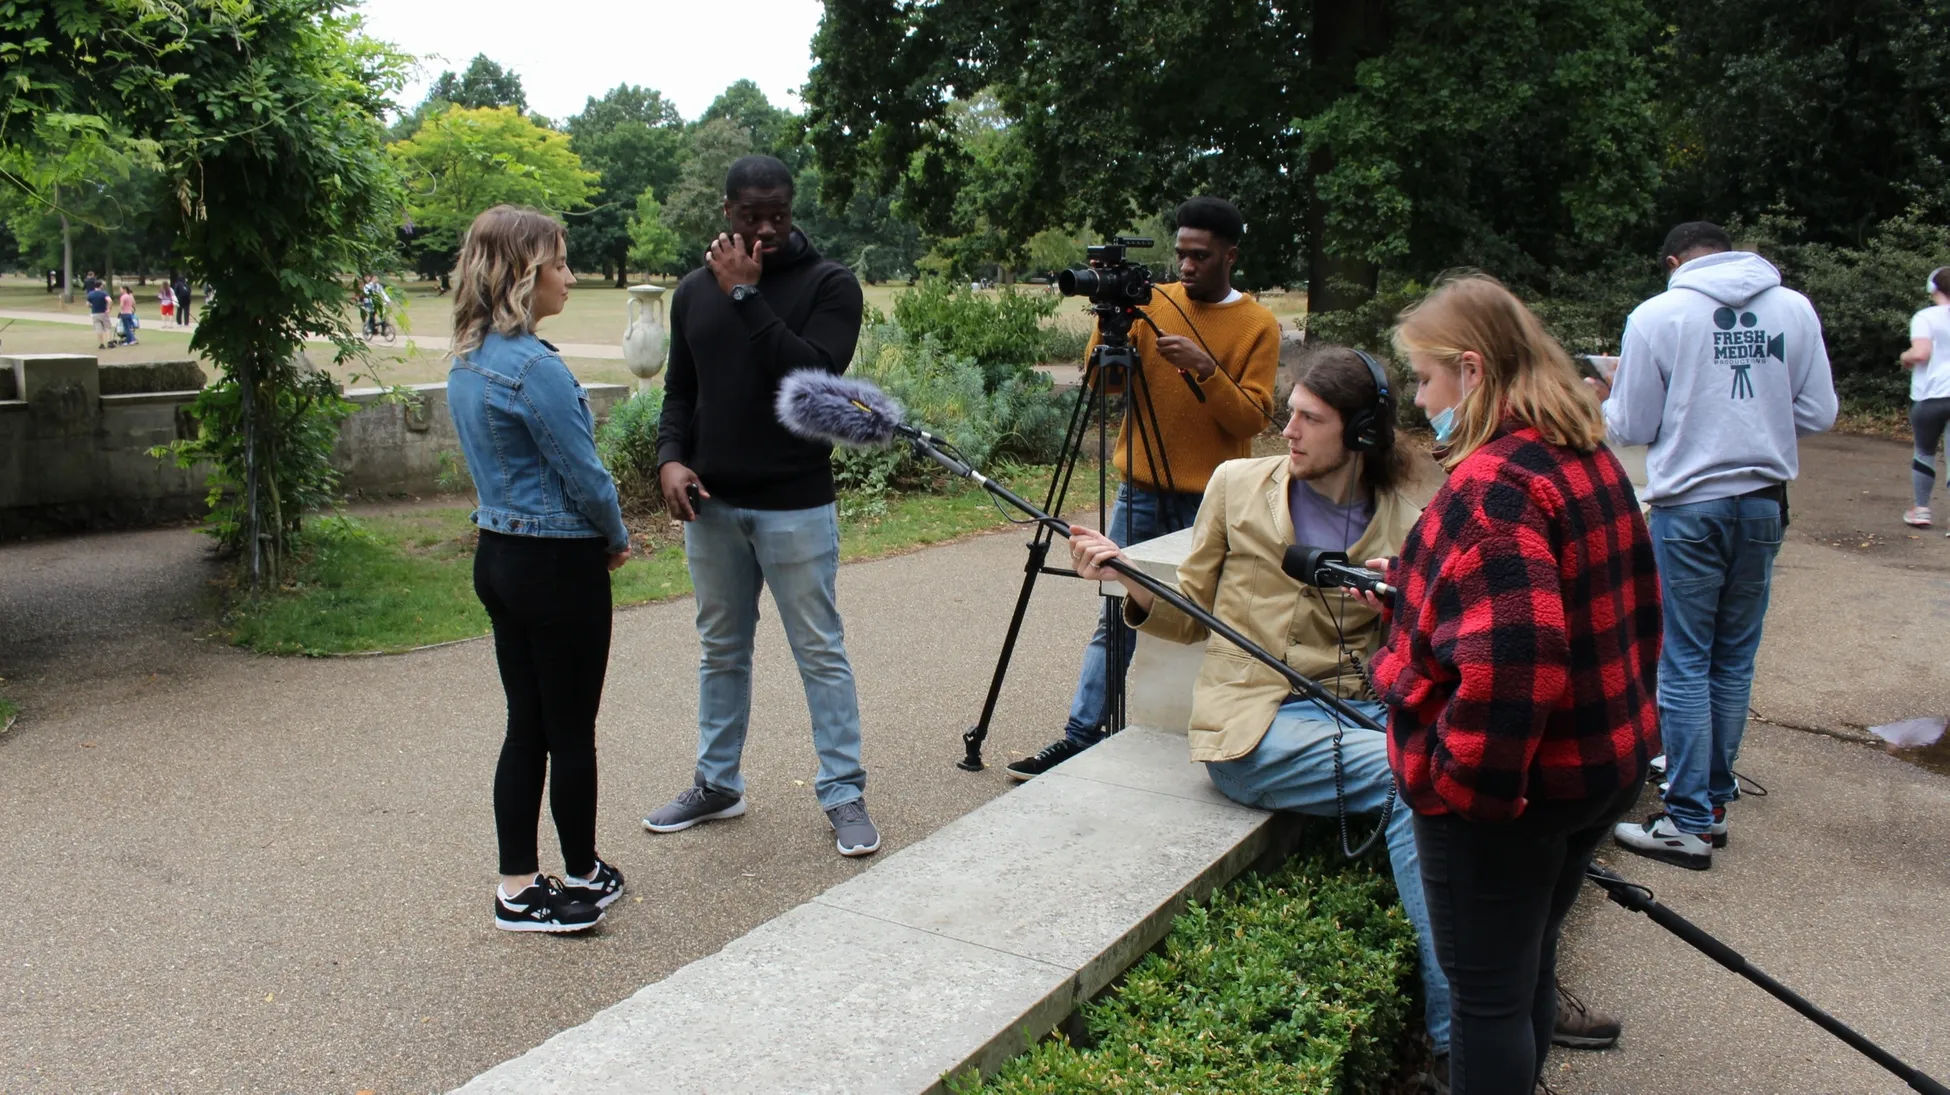 Behind the scenes from short film Fraudsters showing the crew for Fresh Media Productions project, shooting on location